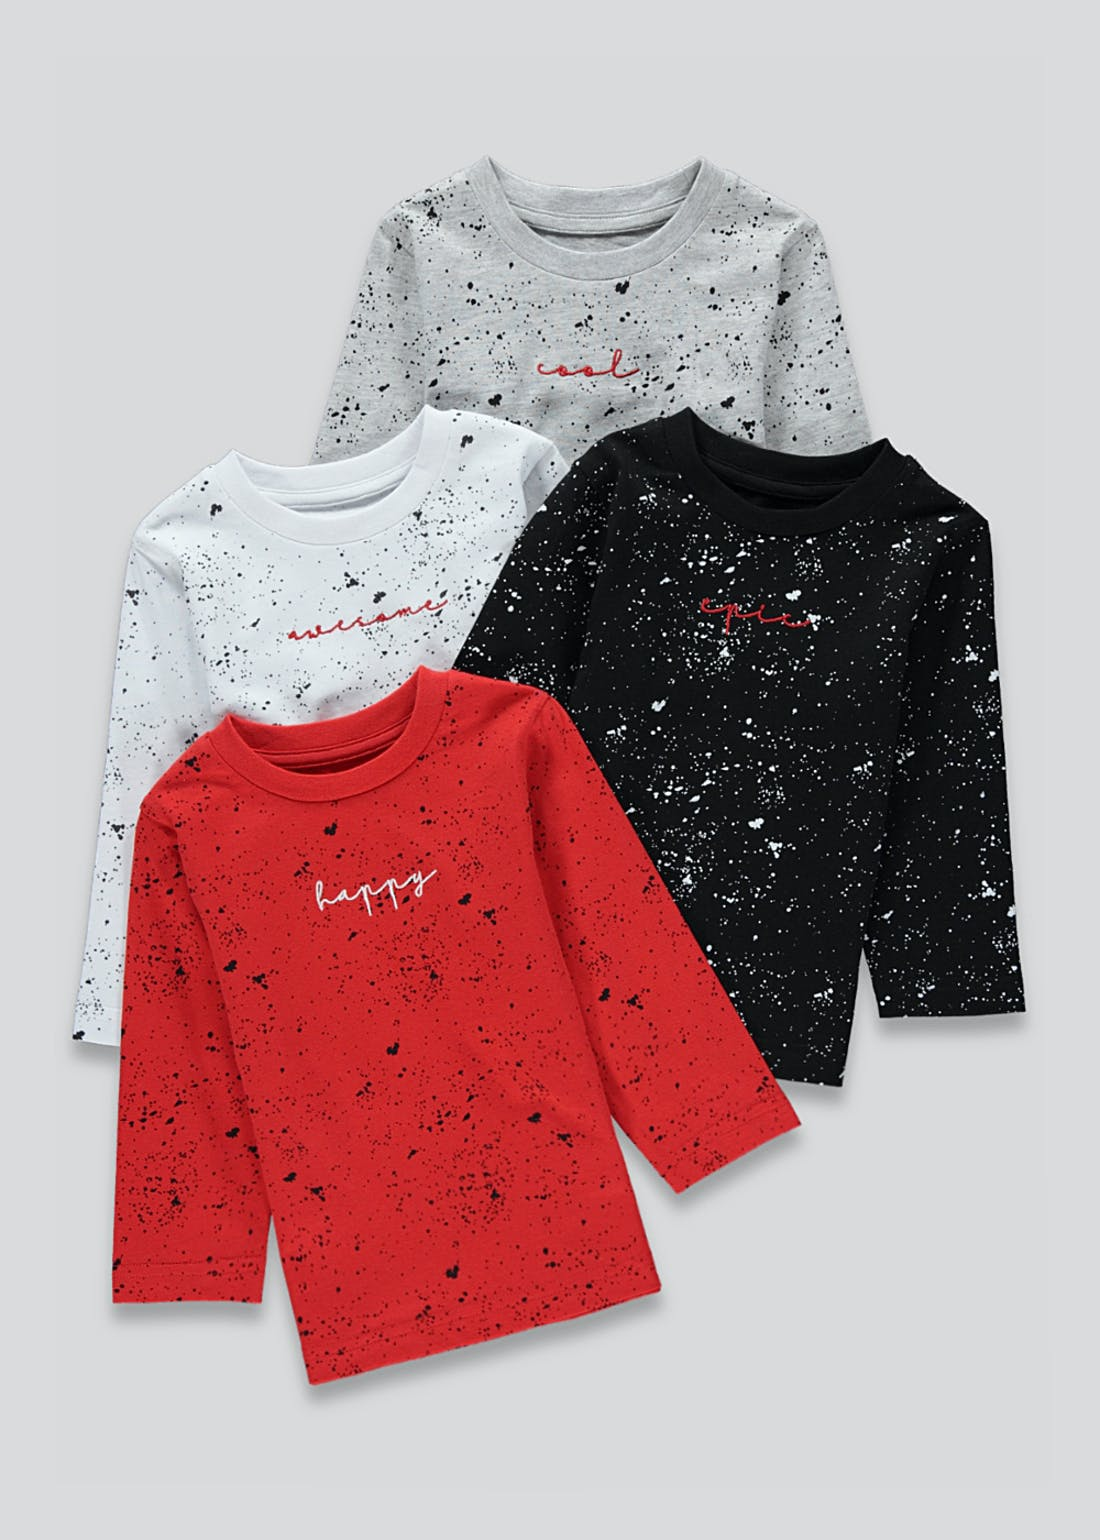 Unisex 4 Pack Splatter T-Shirts (9mths-6yrs)